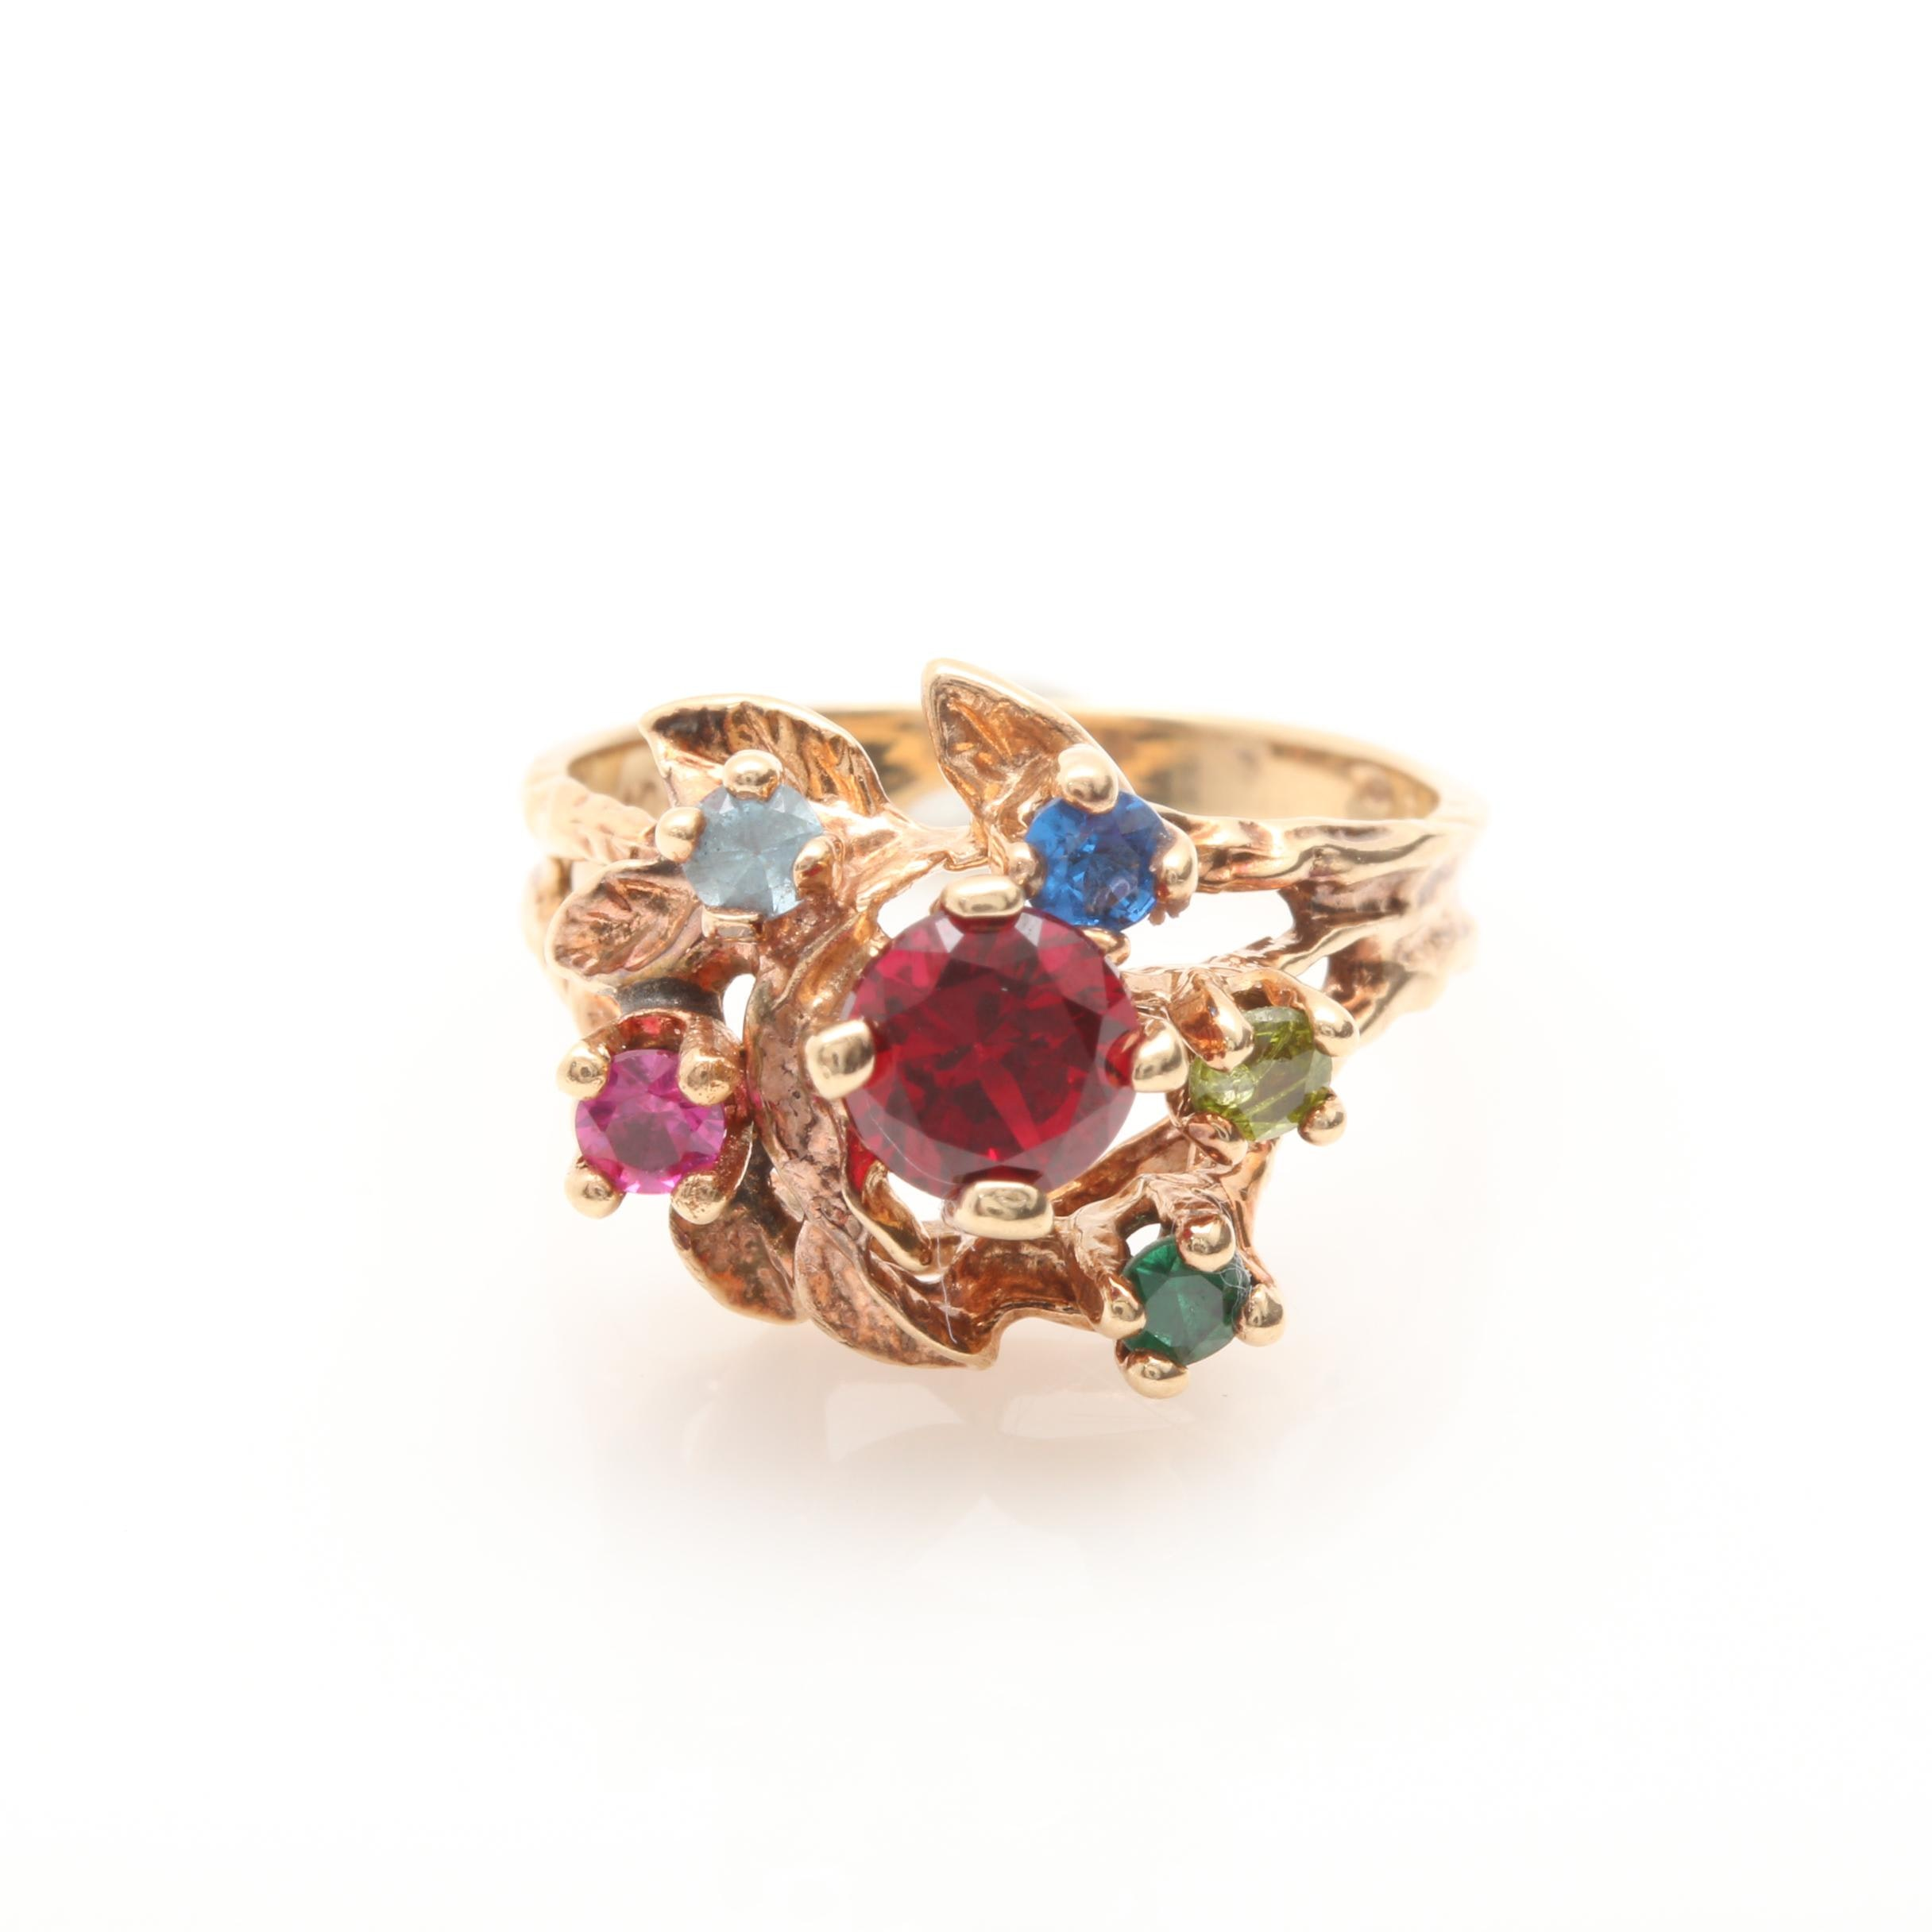 10K Yellow Gold Synthetic Spinel and Synthetic Ruby Ring